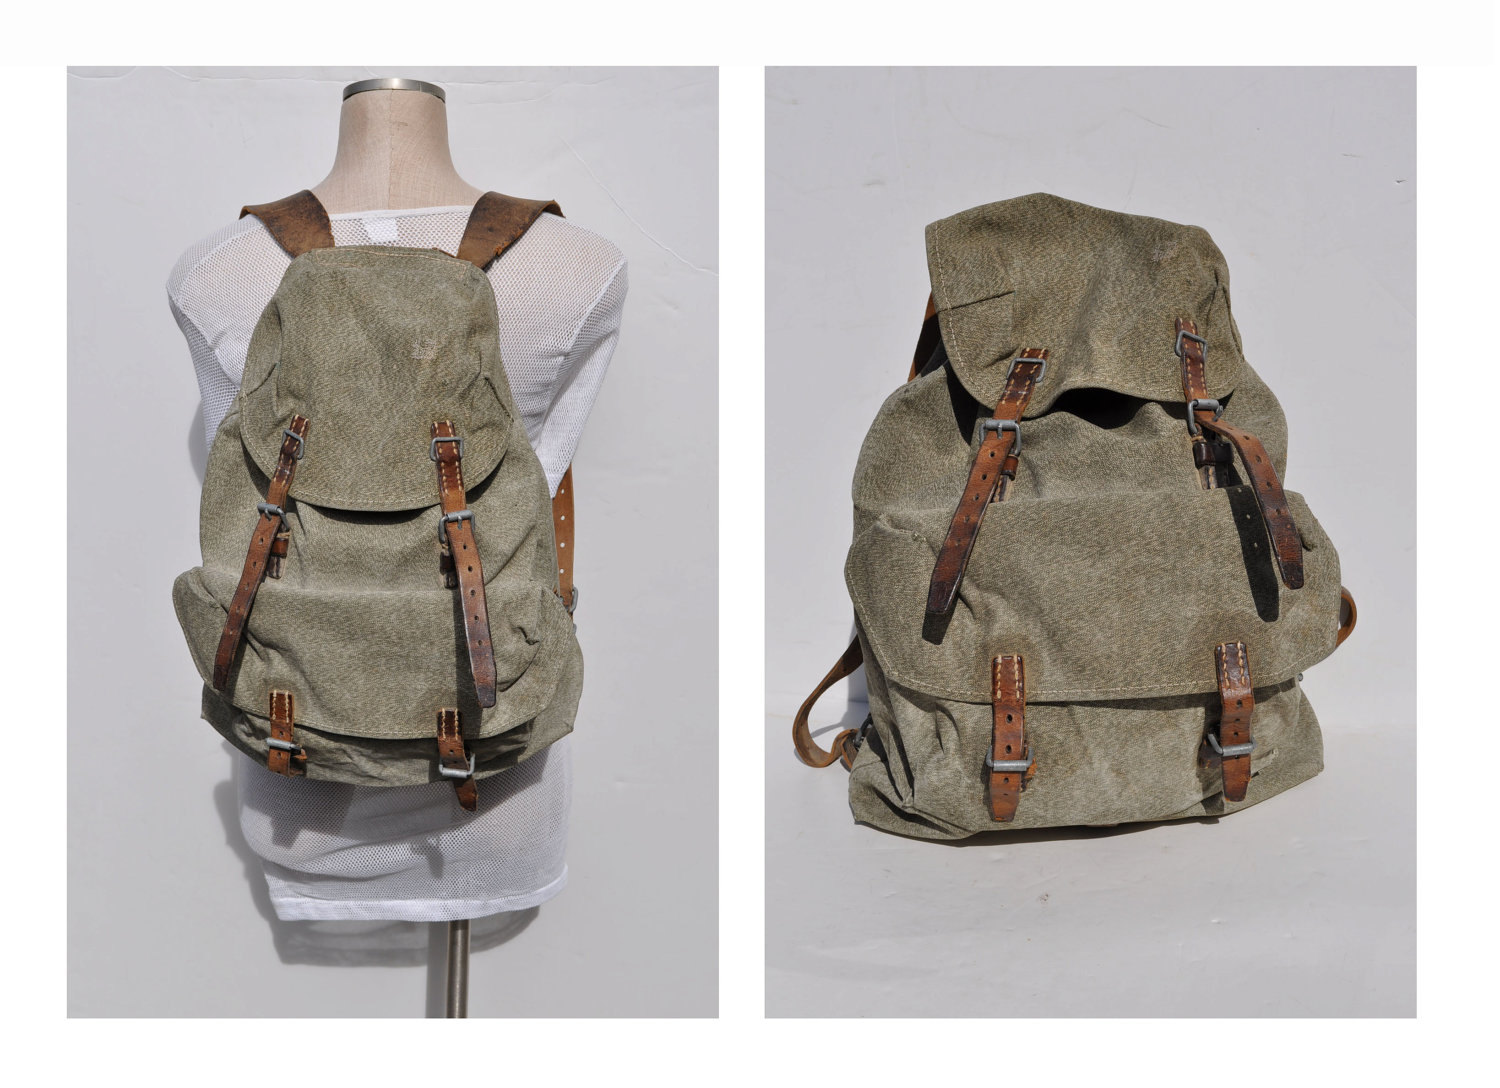 vintage backpack vintage back pack swiss salt and pepper ruck. Black Bedroom Furniture Sets. Home Design Ideas